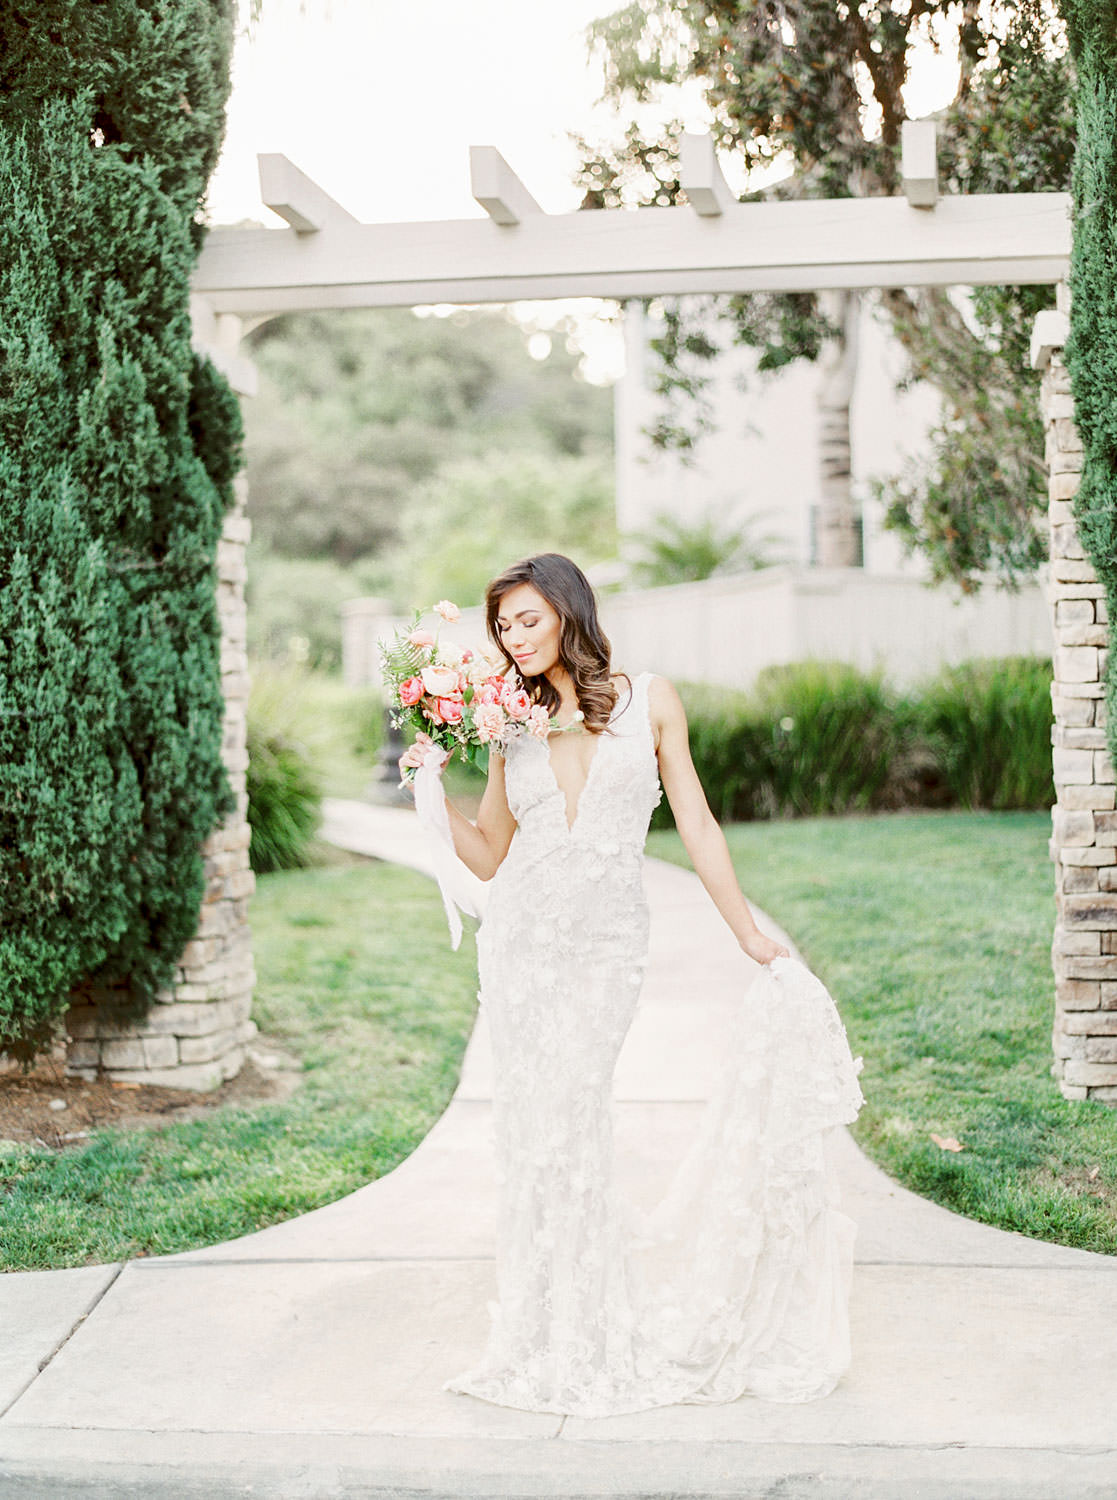 San Diego bridal portraits at a private estate, Bride in Marchesa Daffodil gown, Bridal bouquet with apricot peach blush pink and green, Film by Cavin Elizabeth Photography